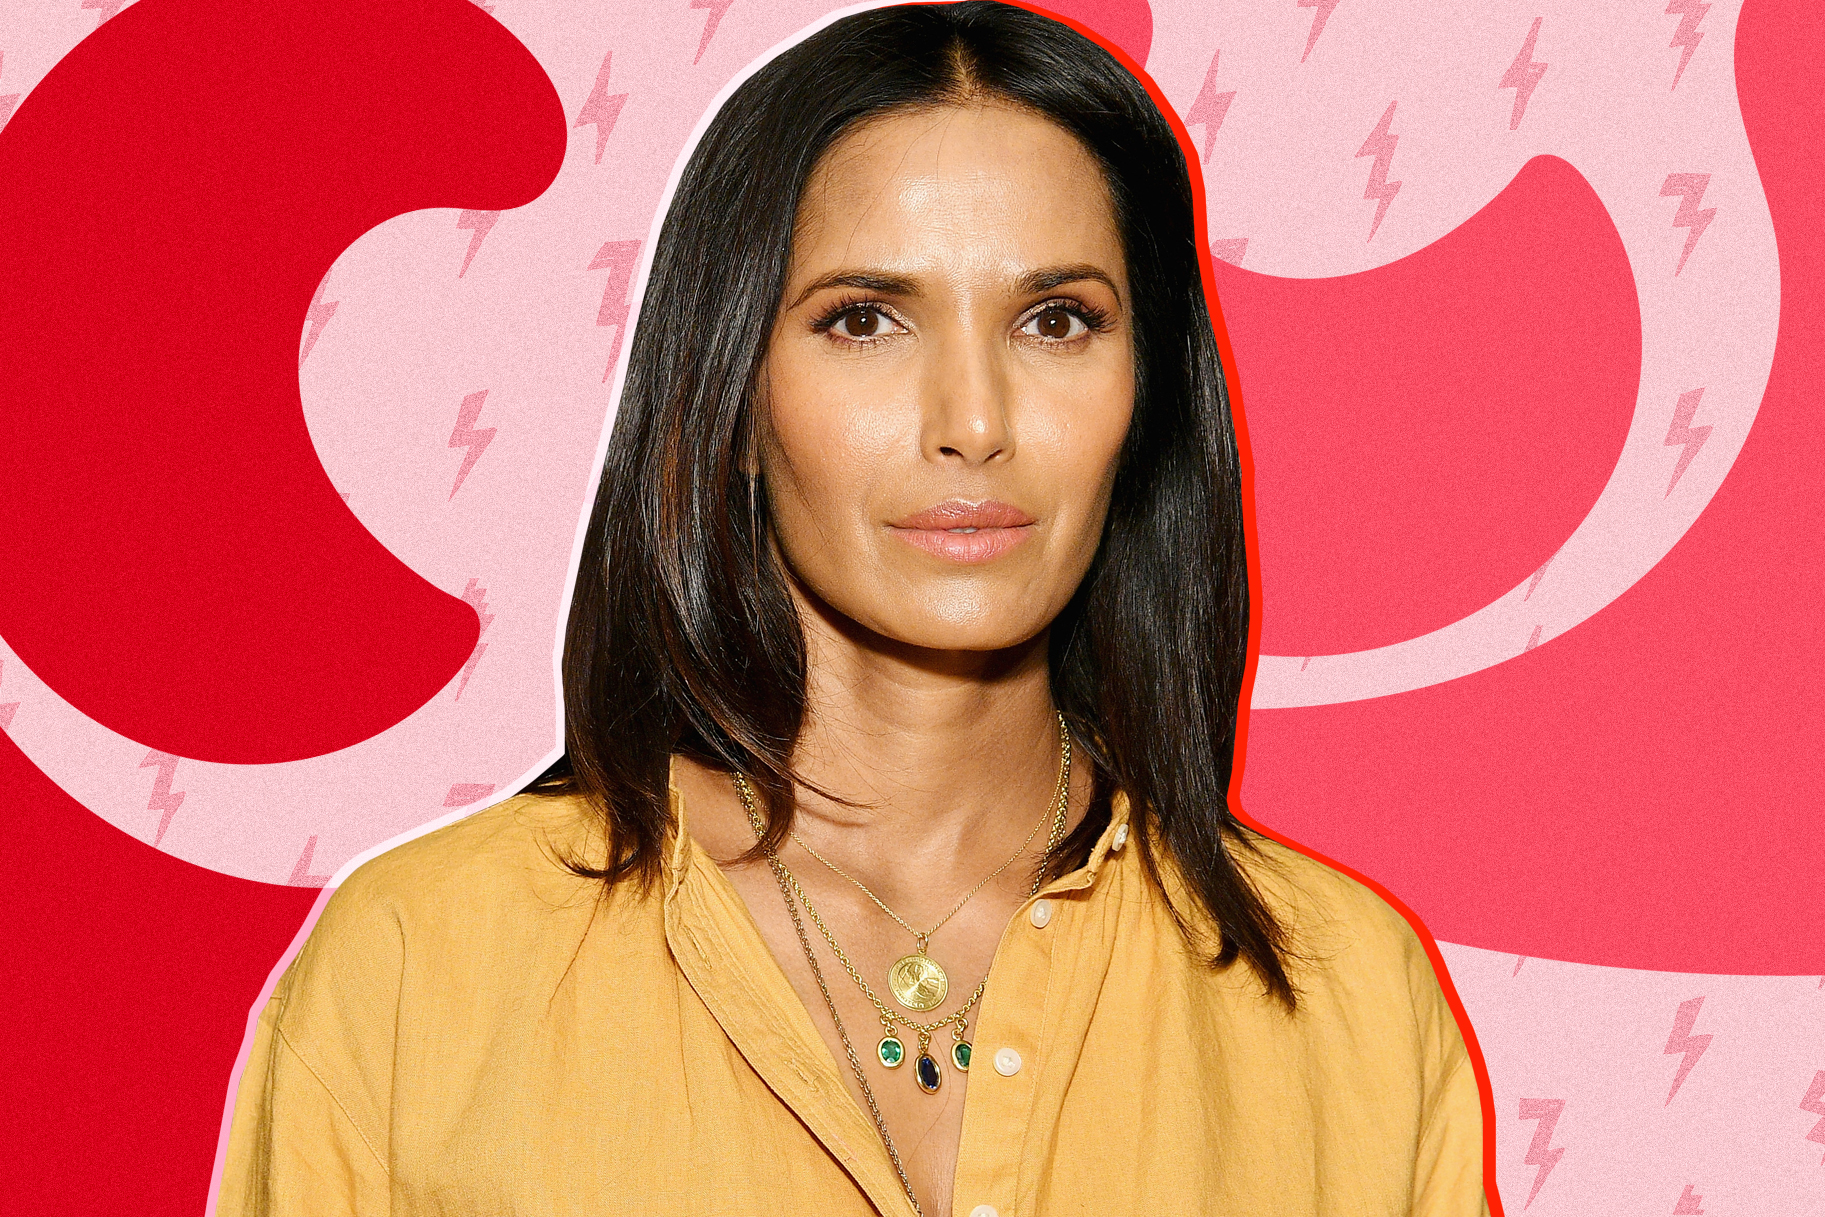 1663a8adfc8 Padma Lakshmi Poses Nude for the Cover of Vogue India